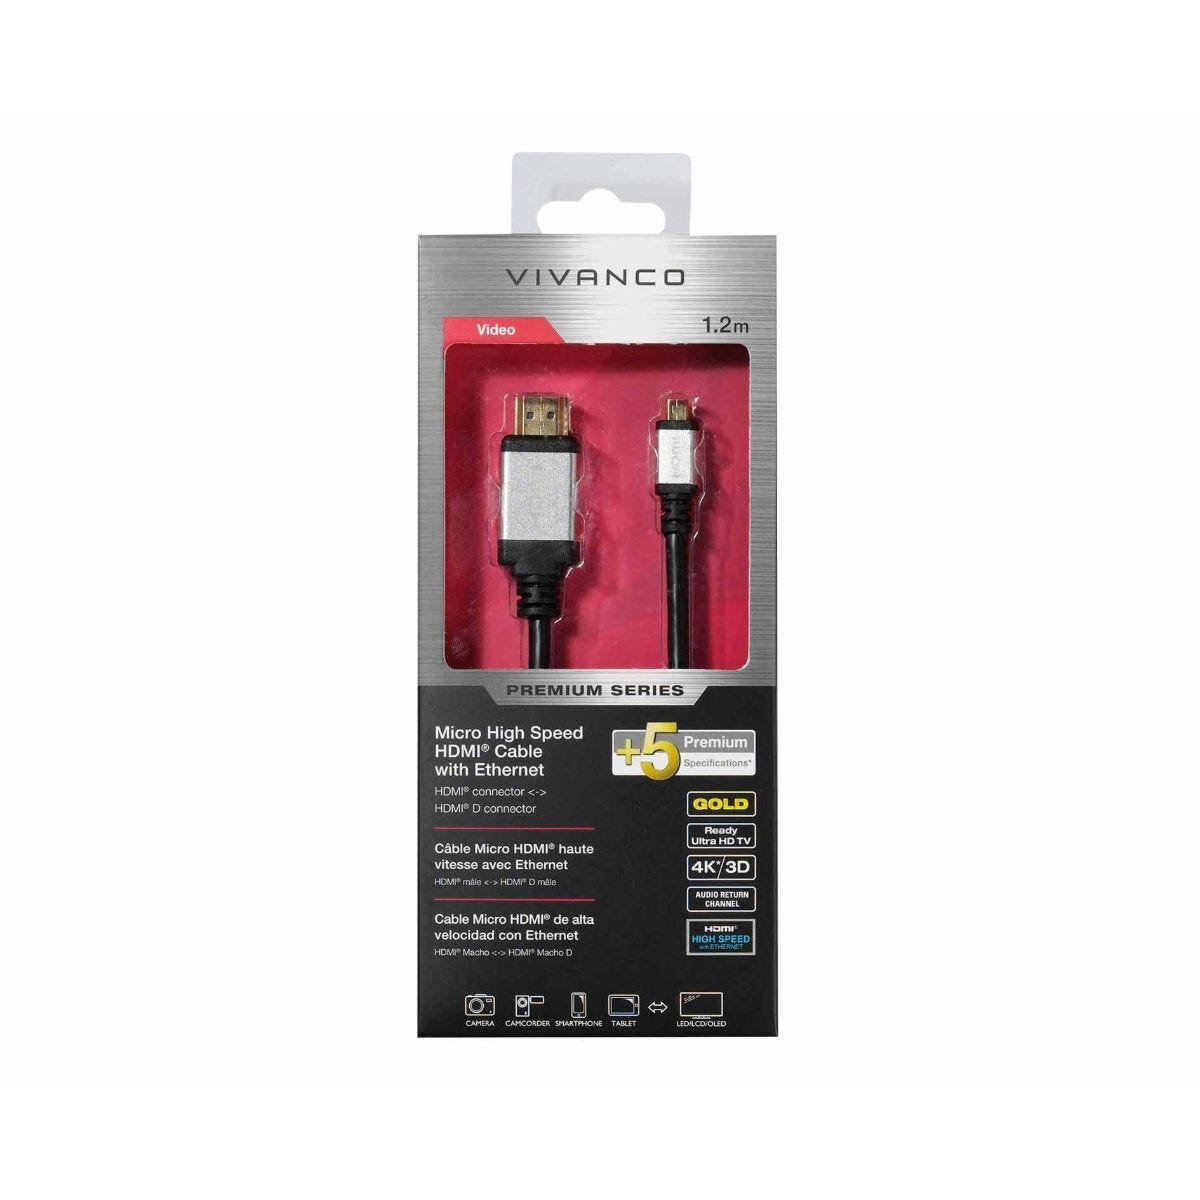 Vivanco Premium Micro High Speed HDMI Cable with Ethernet 1.2M